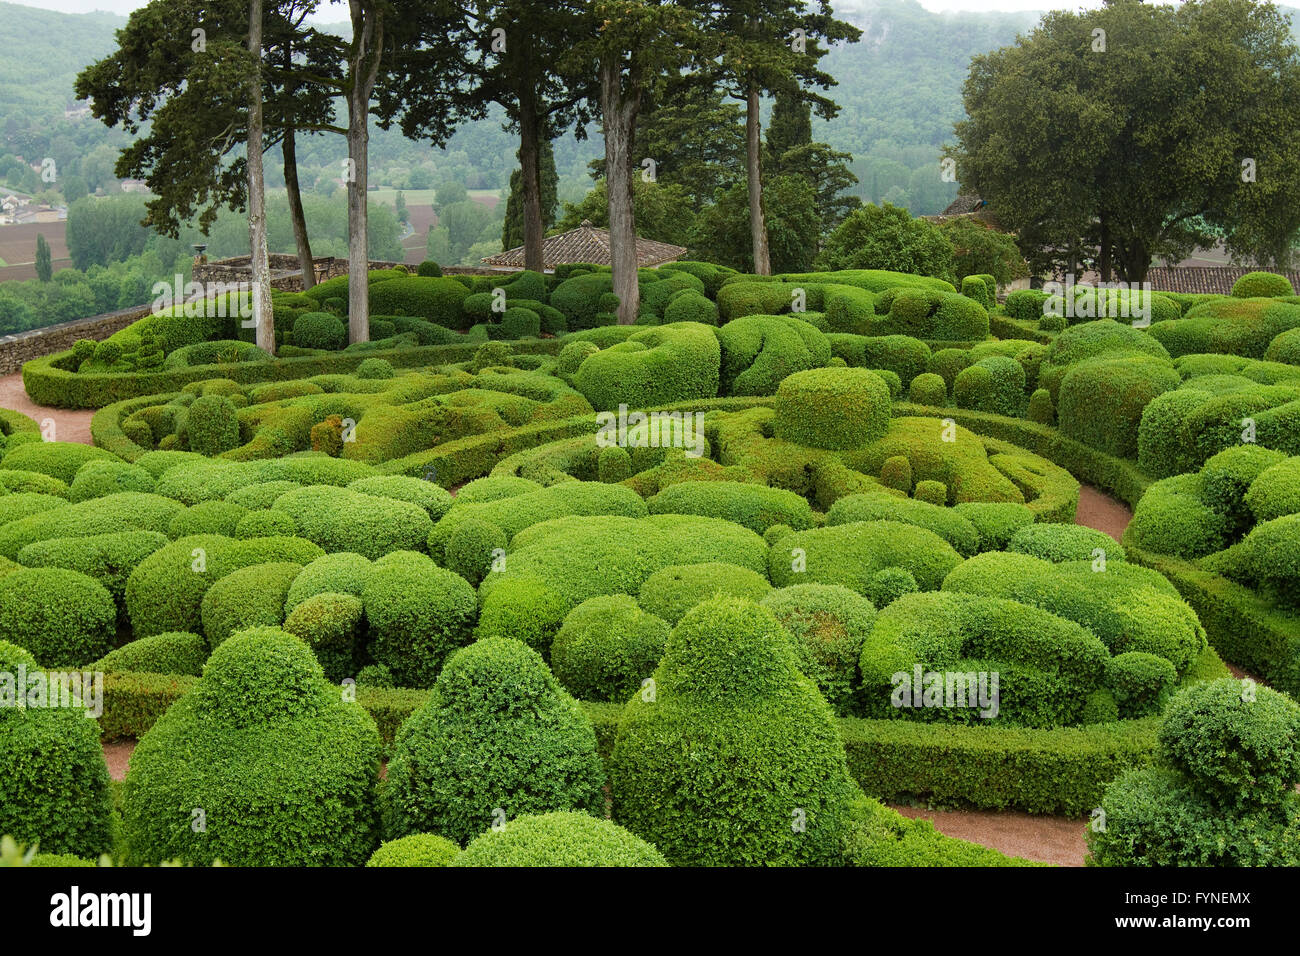 The picturesque gardens of Marqueyssac Dordogne France Stock Photo